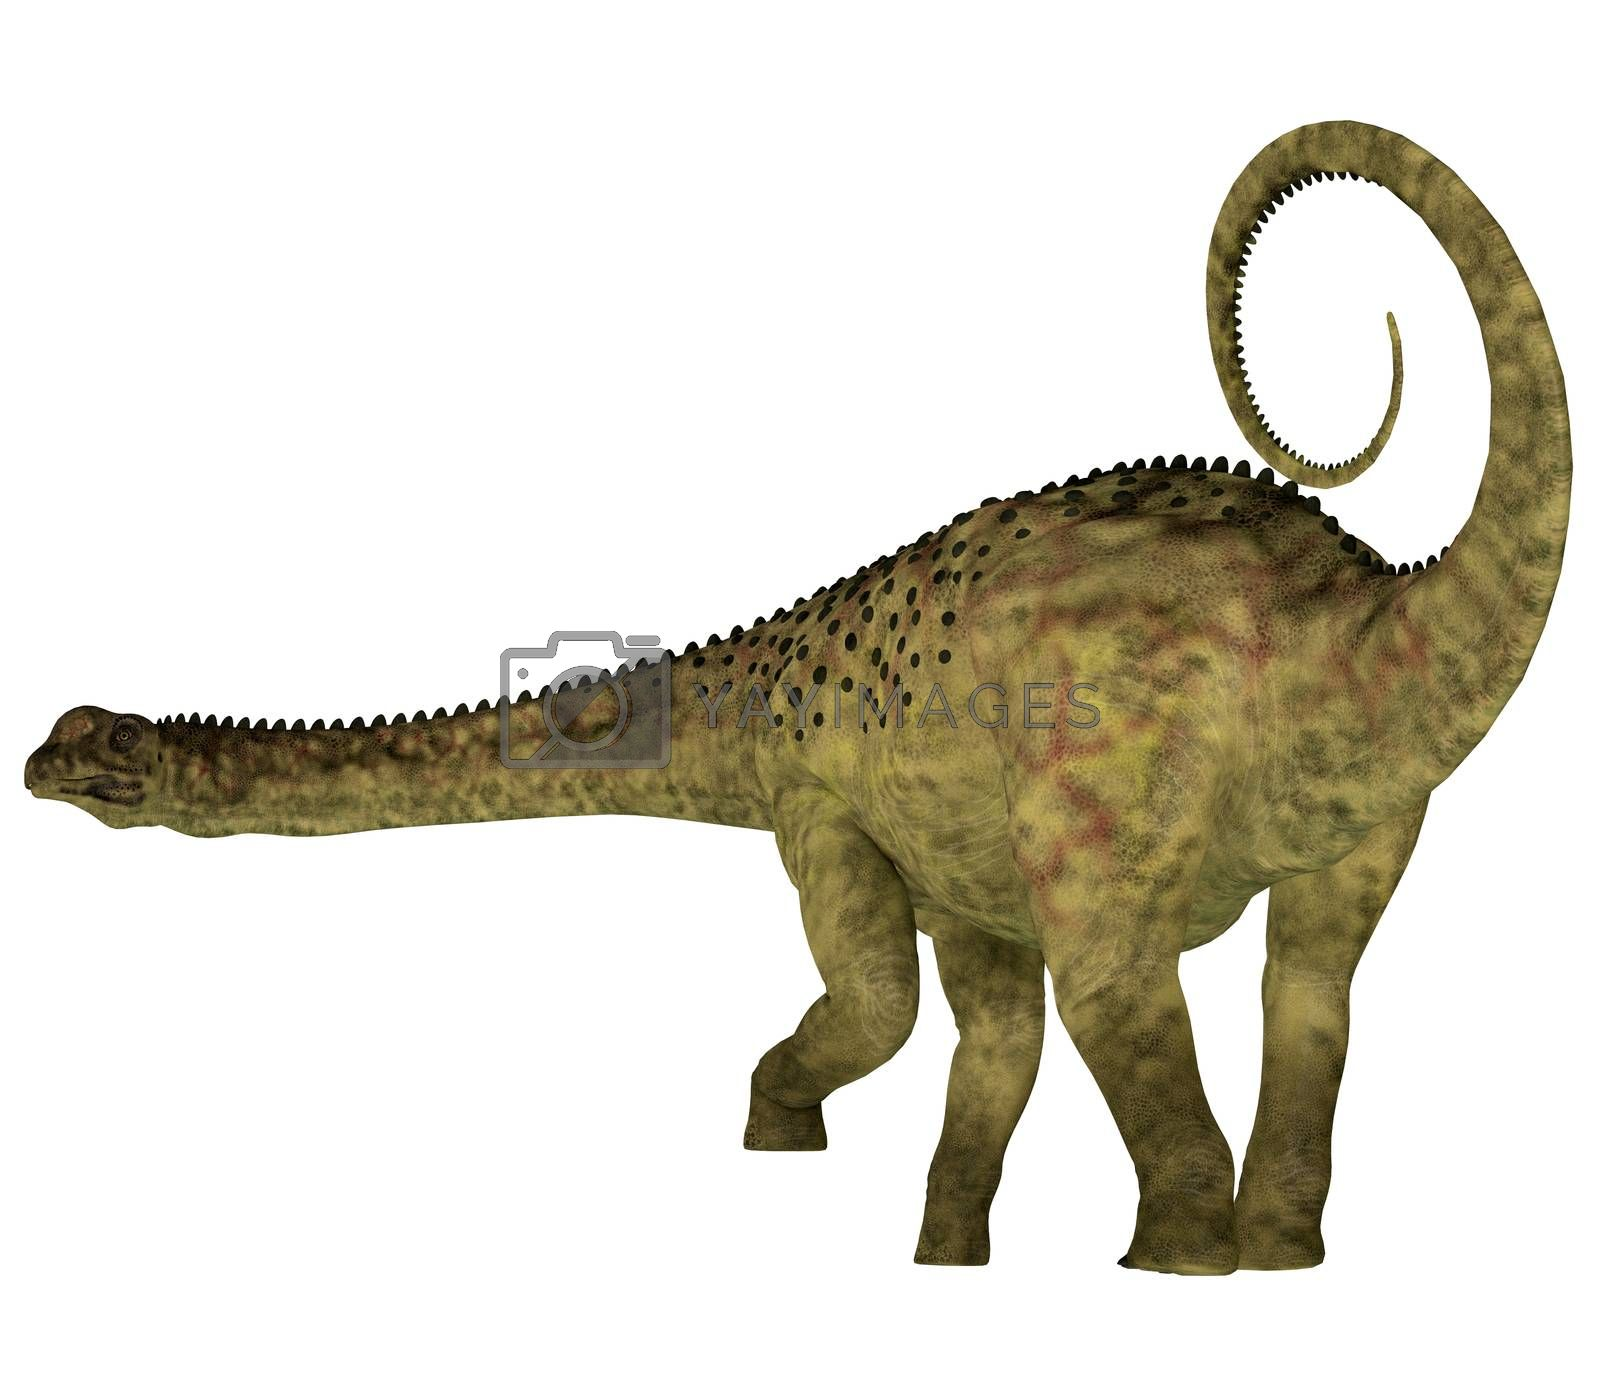 Uberabatitan was a herbivorous sauropod dinosaur that lived in Brazil during the Cretaceous Period.